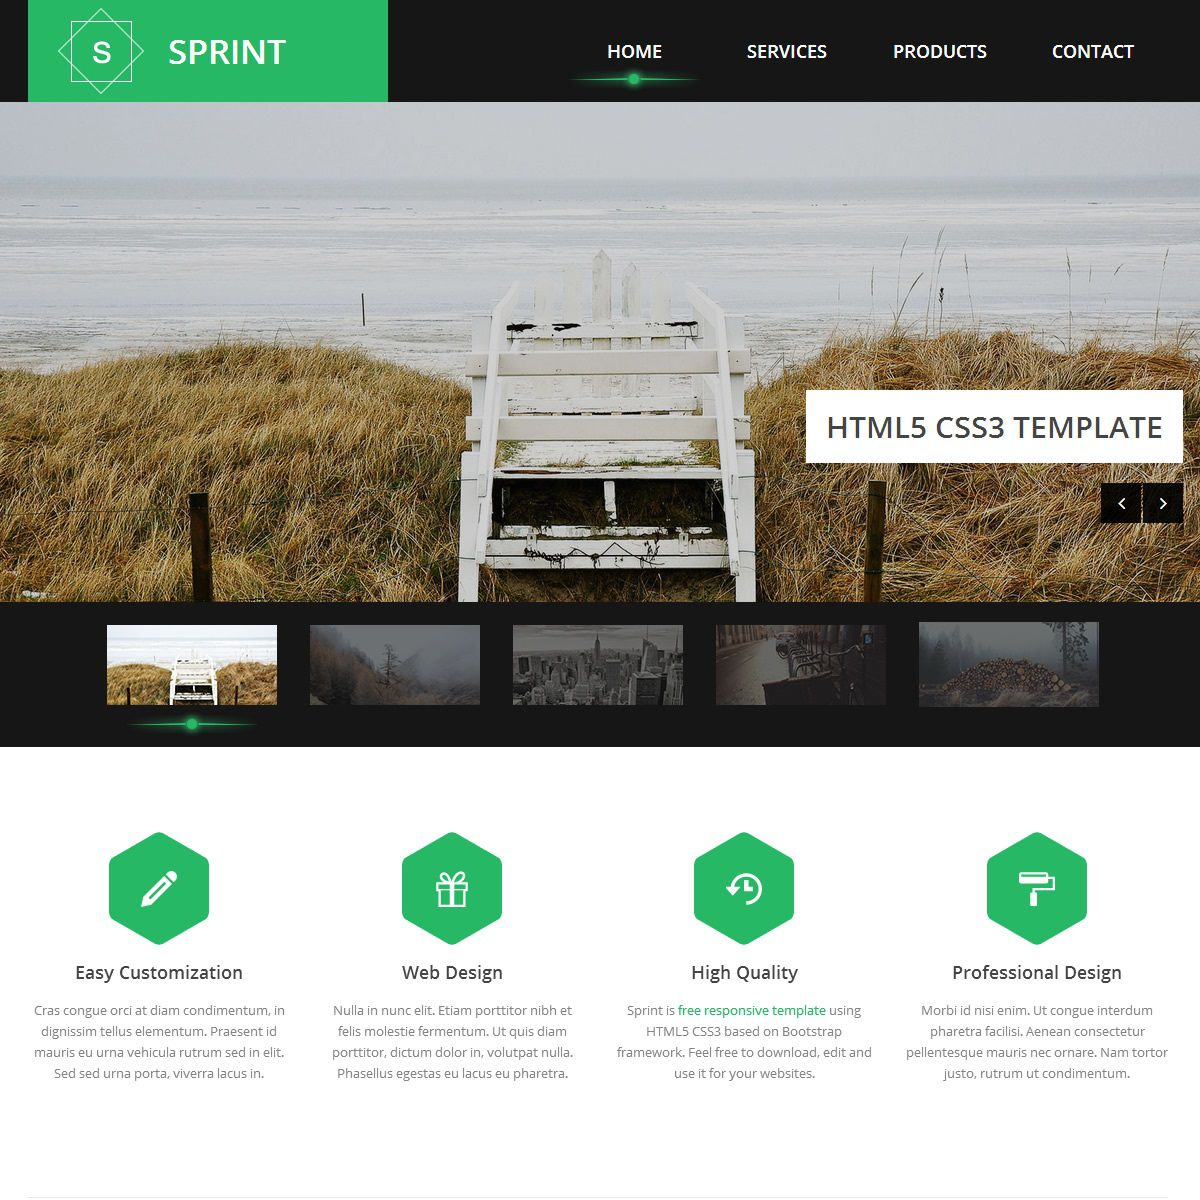 009 Remarkable Download Web Template Html5 Image  Photography Website Free Logistic BusinesFull